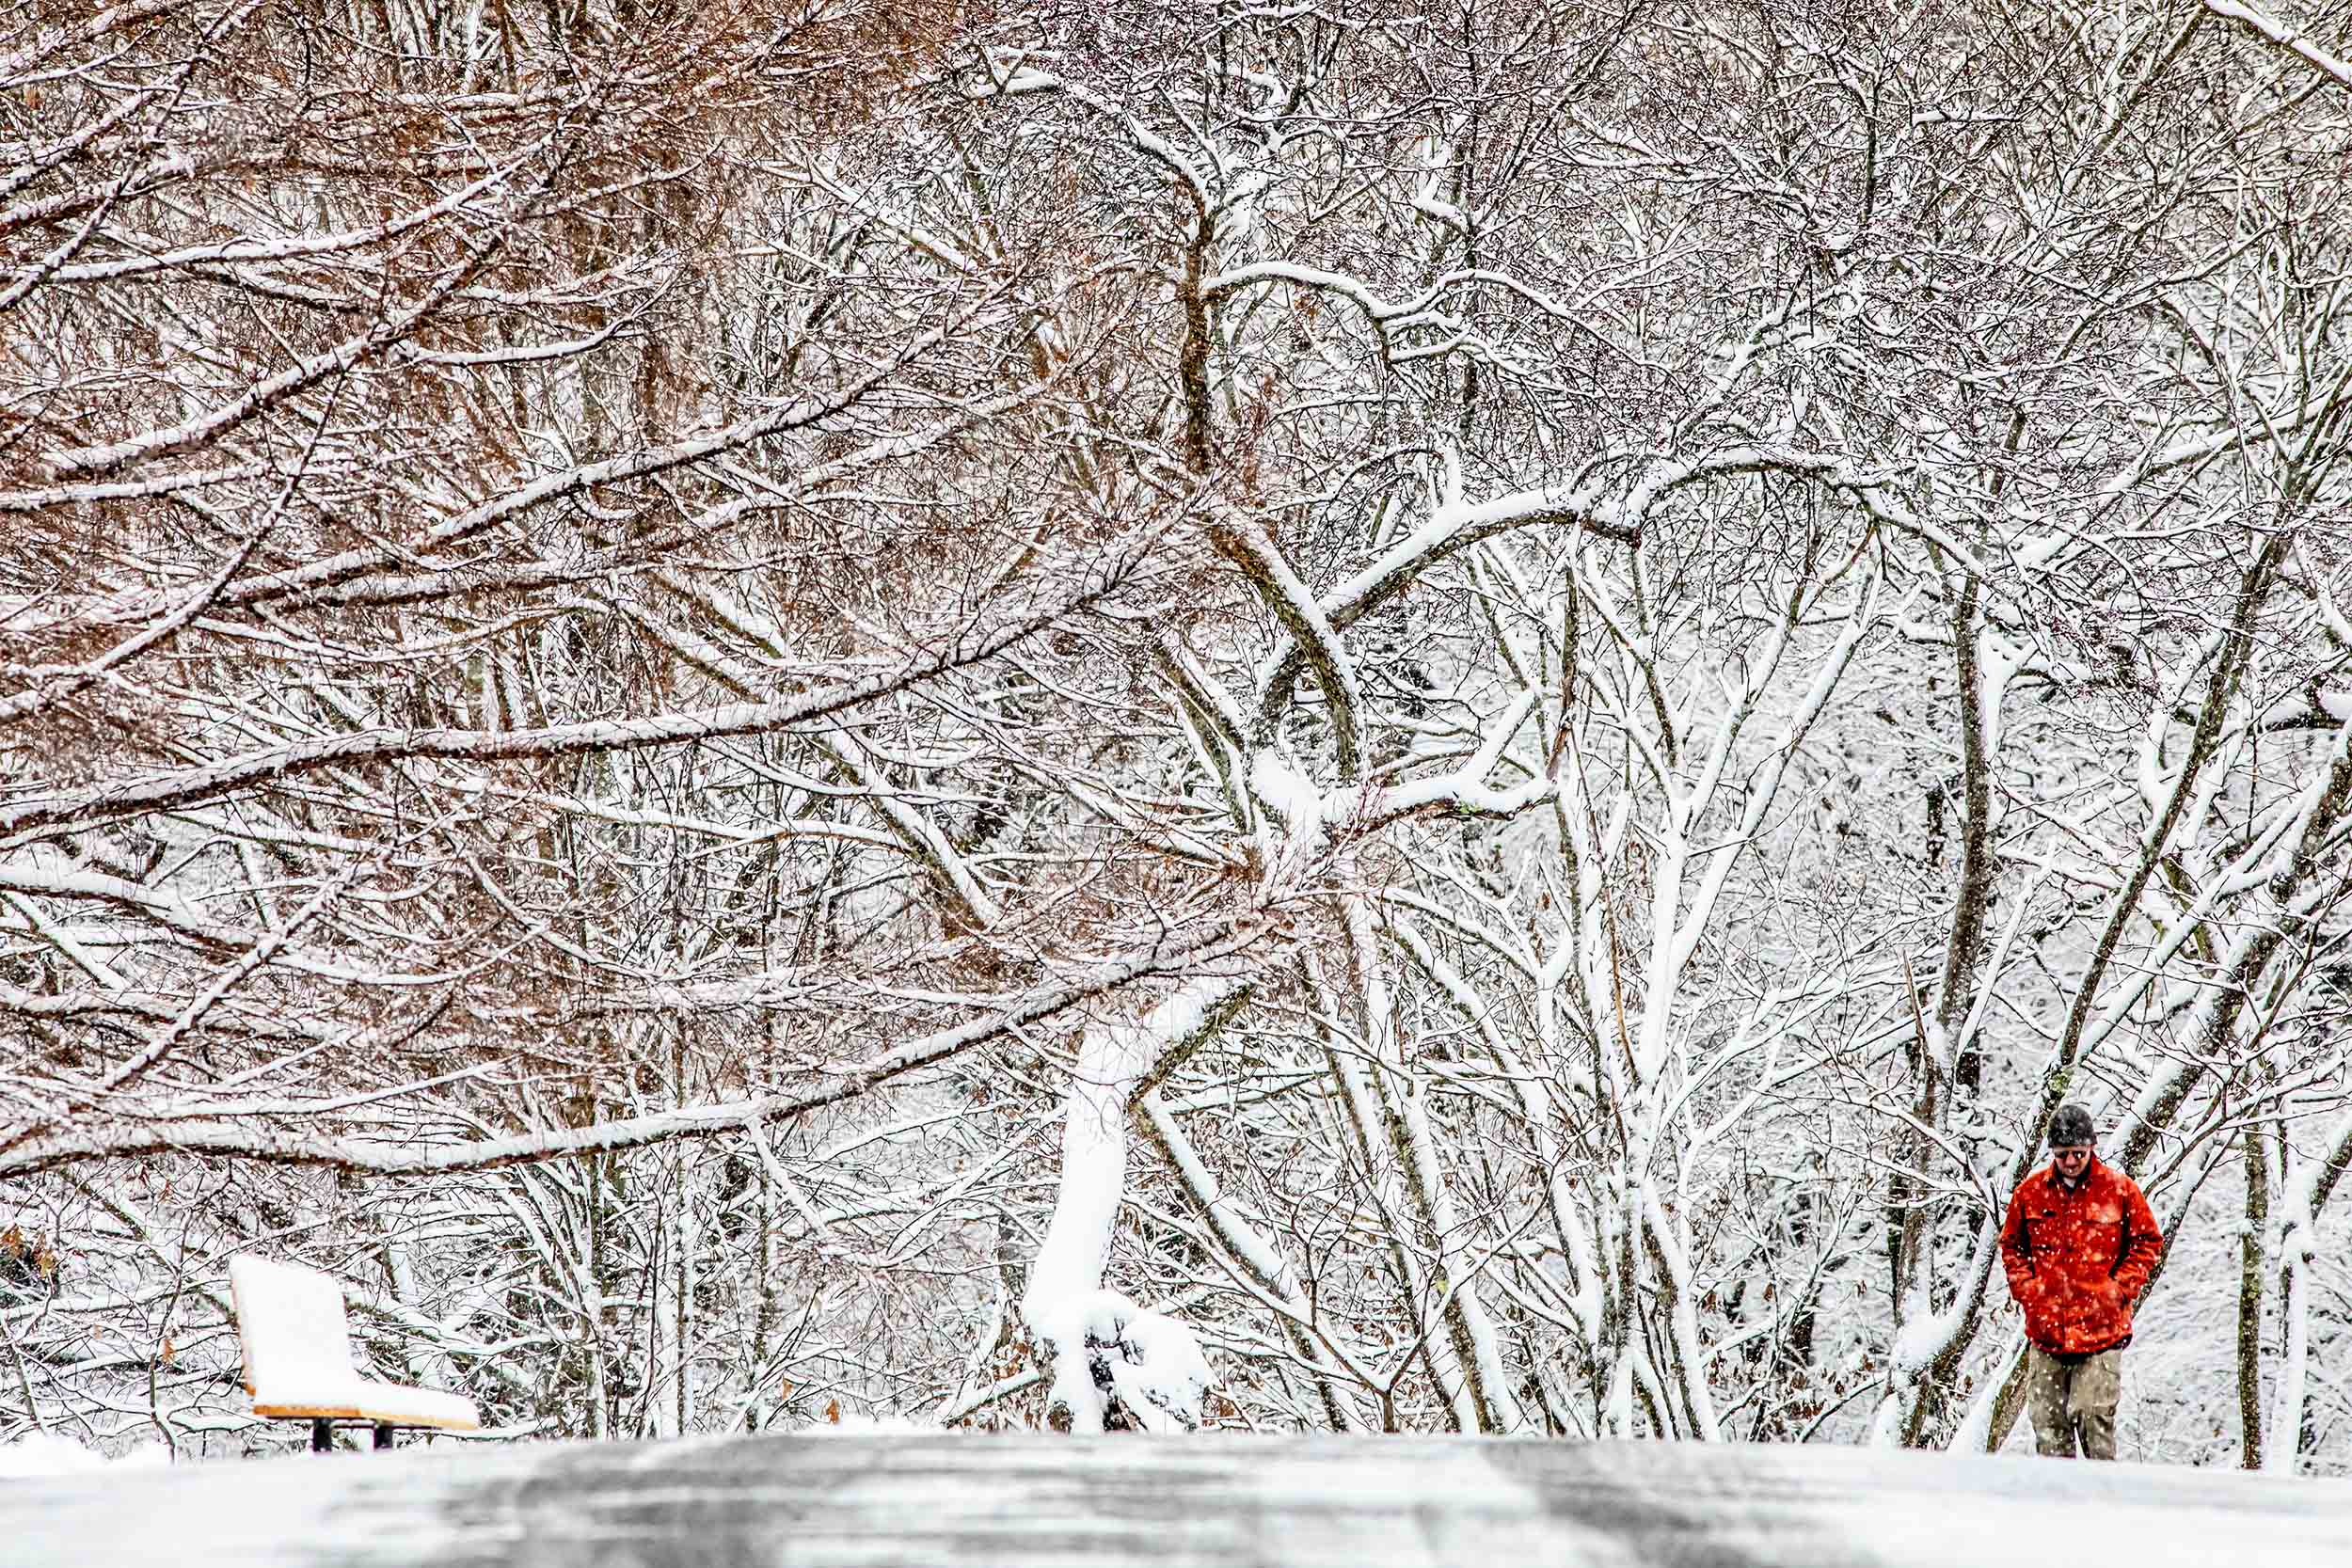 John Jacobs of Roslindale commutes through a snow-covered path of Arnold Arboretum.